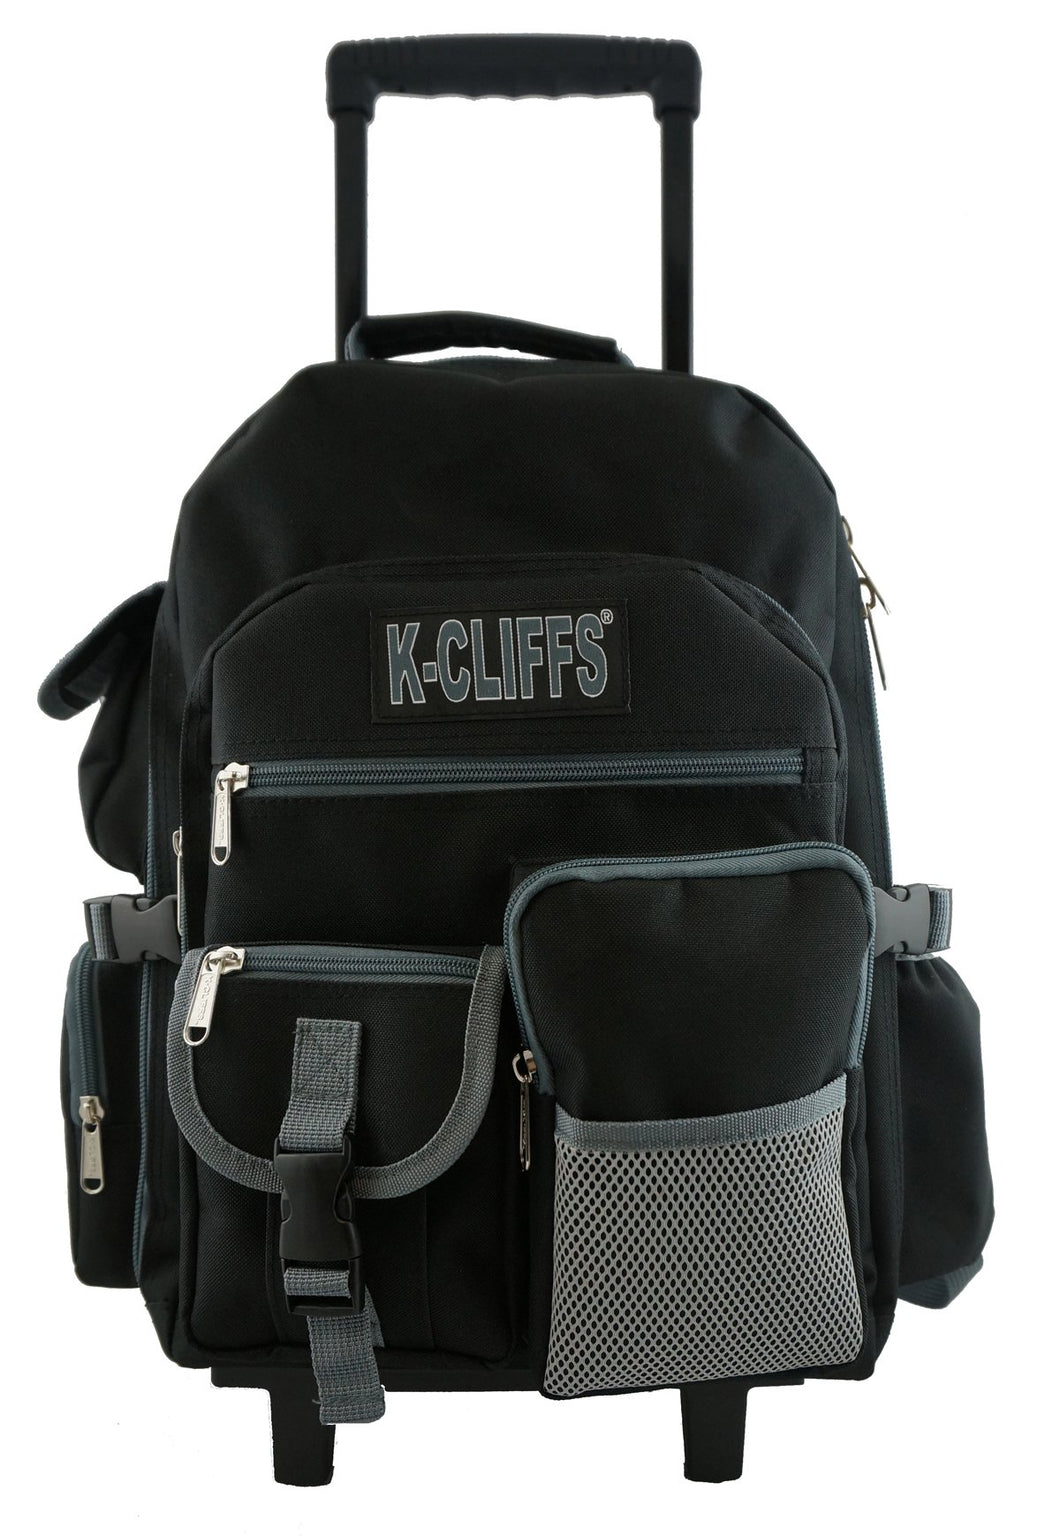 Rolling Backpack School Backpack with Wheels Quality Roller Book Bag Day Pack with Multiple Pockets - k-cliffs